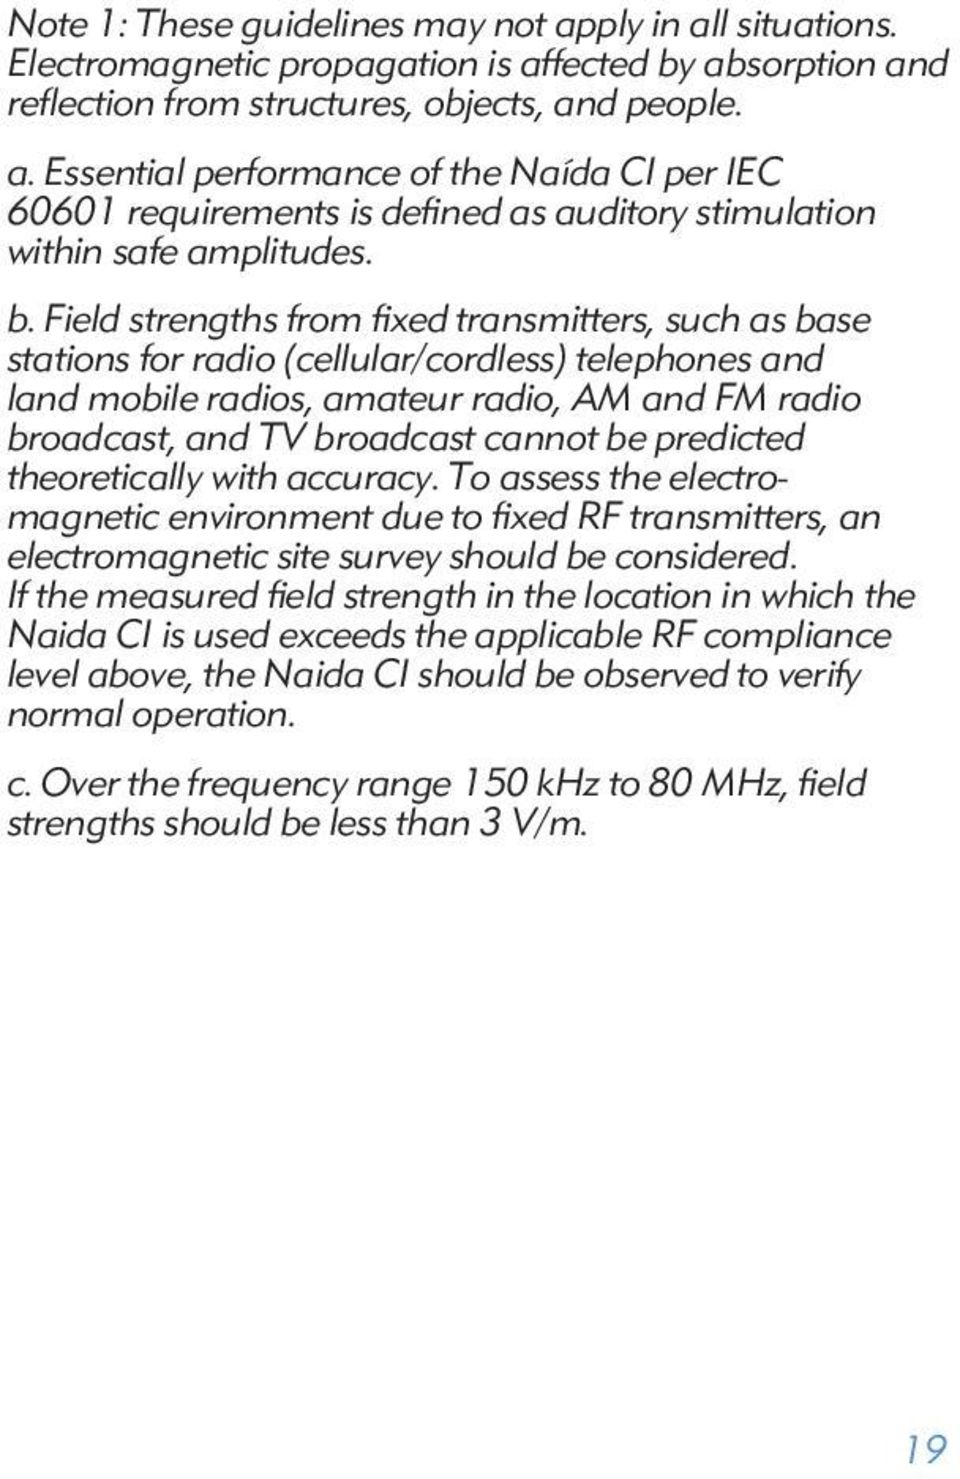 predicted theoretically with accuracy. To assess the electromagnetic environment due to fixed RF transmitters, an electromagnetic site survey should be considered.